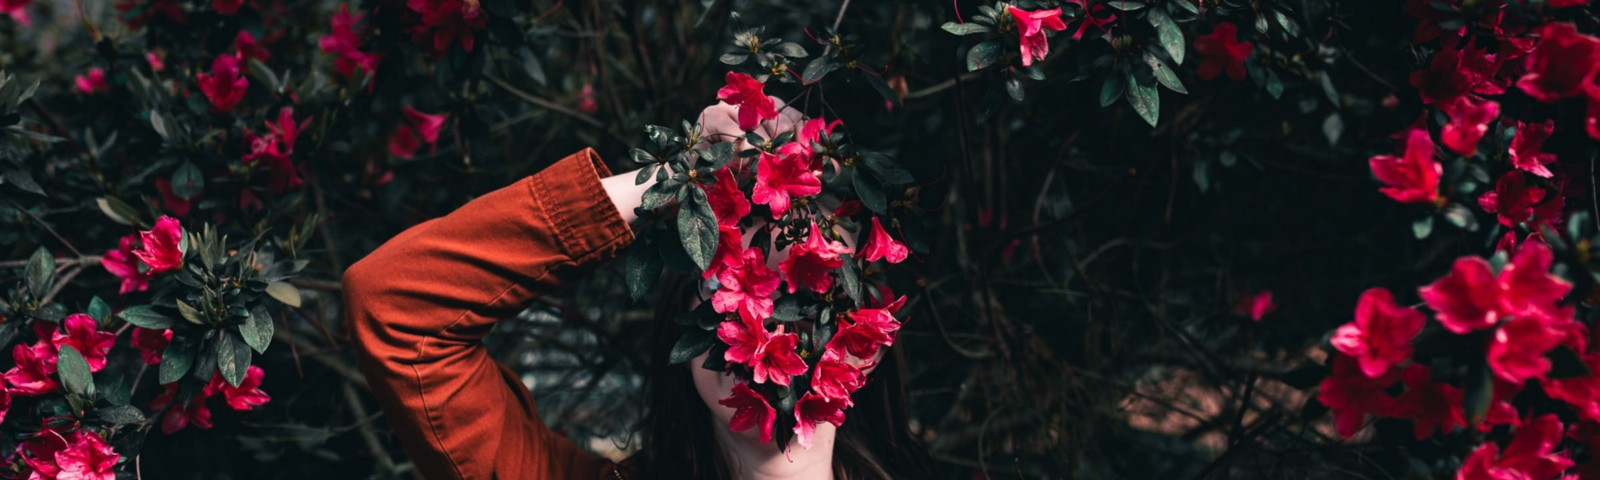 Woman holding a bunch of flowers obscuring her face